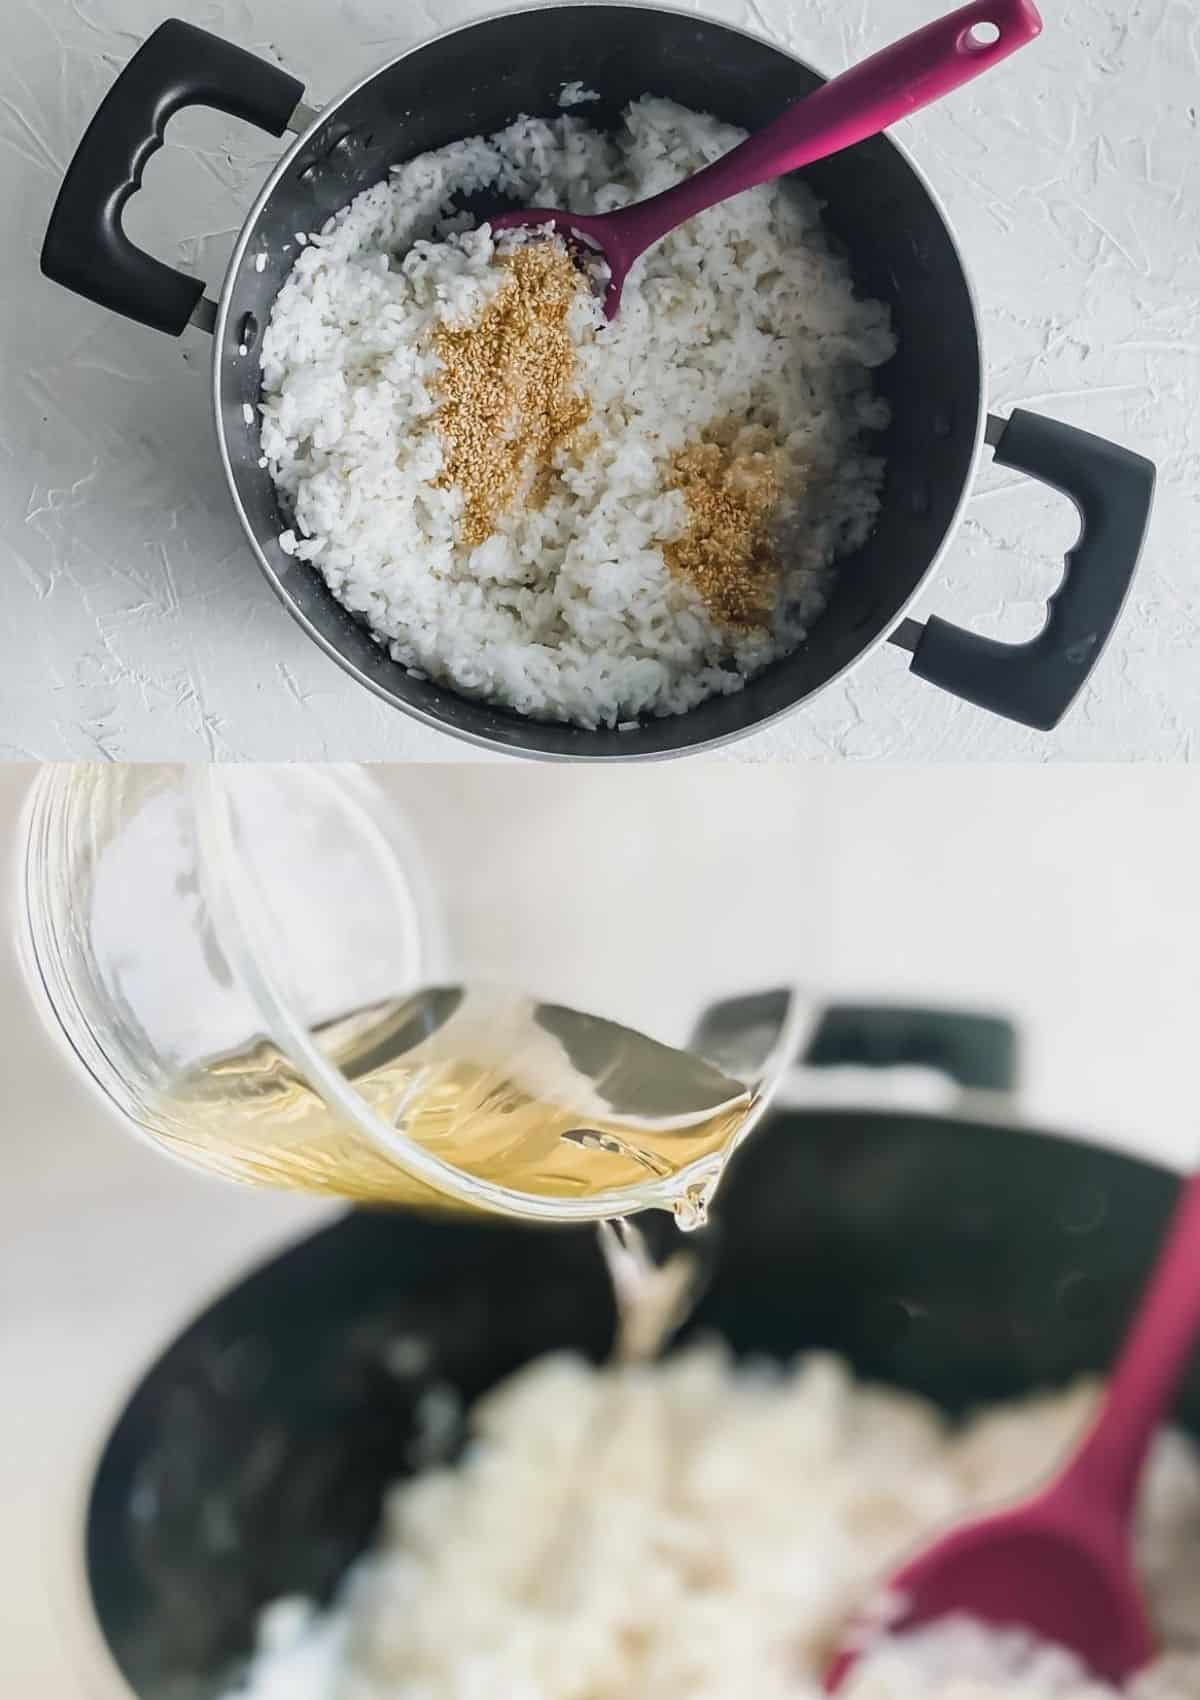 Sushi rice in a pot with added sesame seeds (top). Poured rice vinegar into rice (bottom)